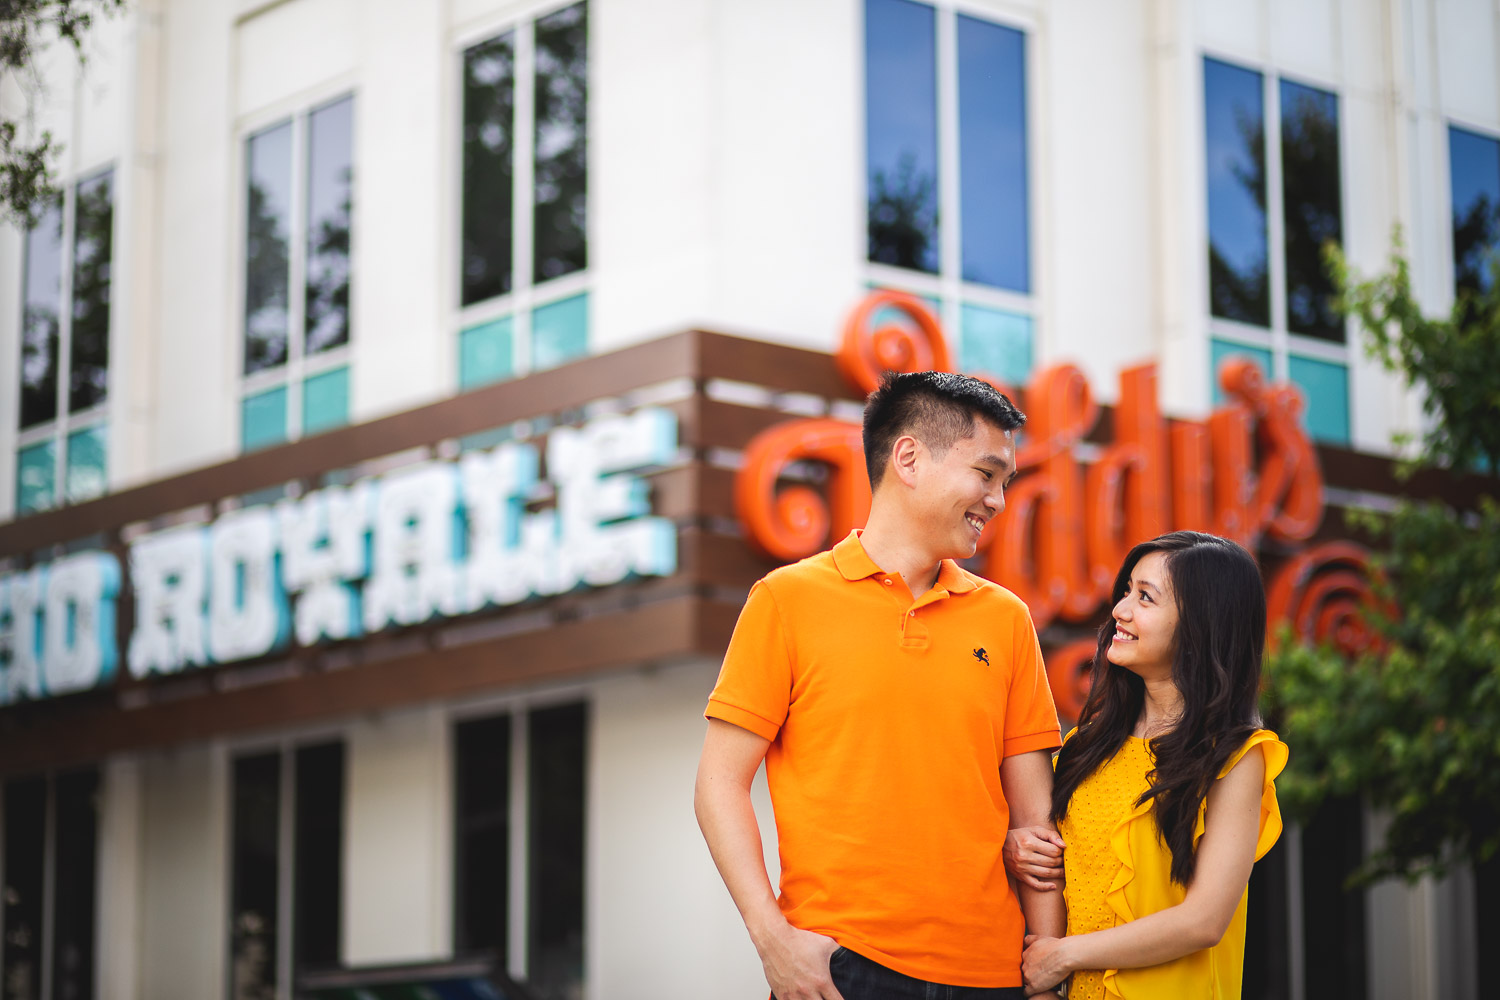 Nelson & Janet Engagement Shoot at Facebook HQ